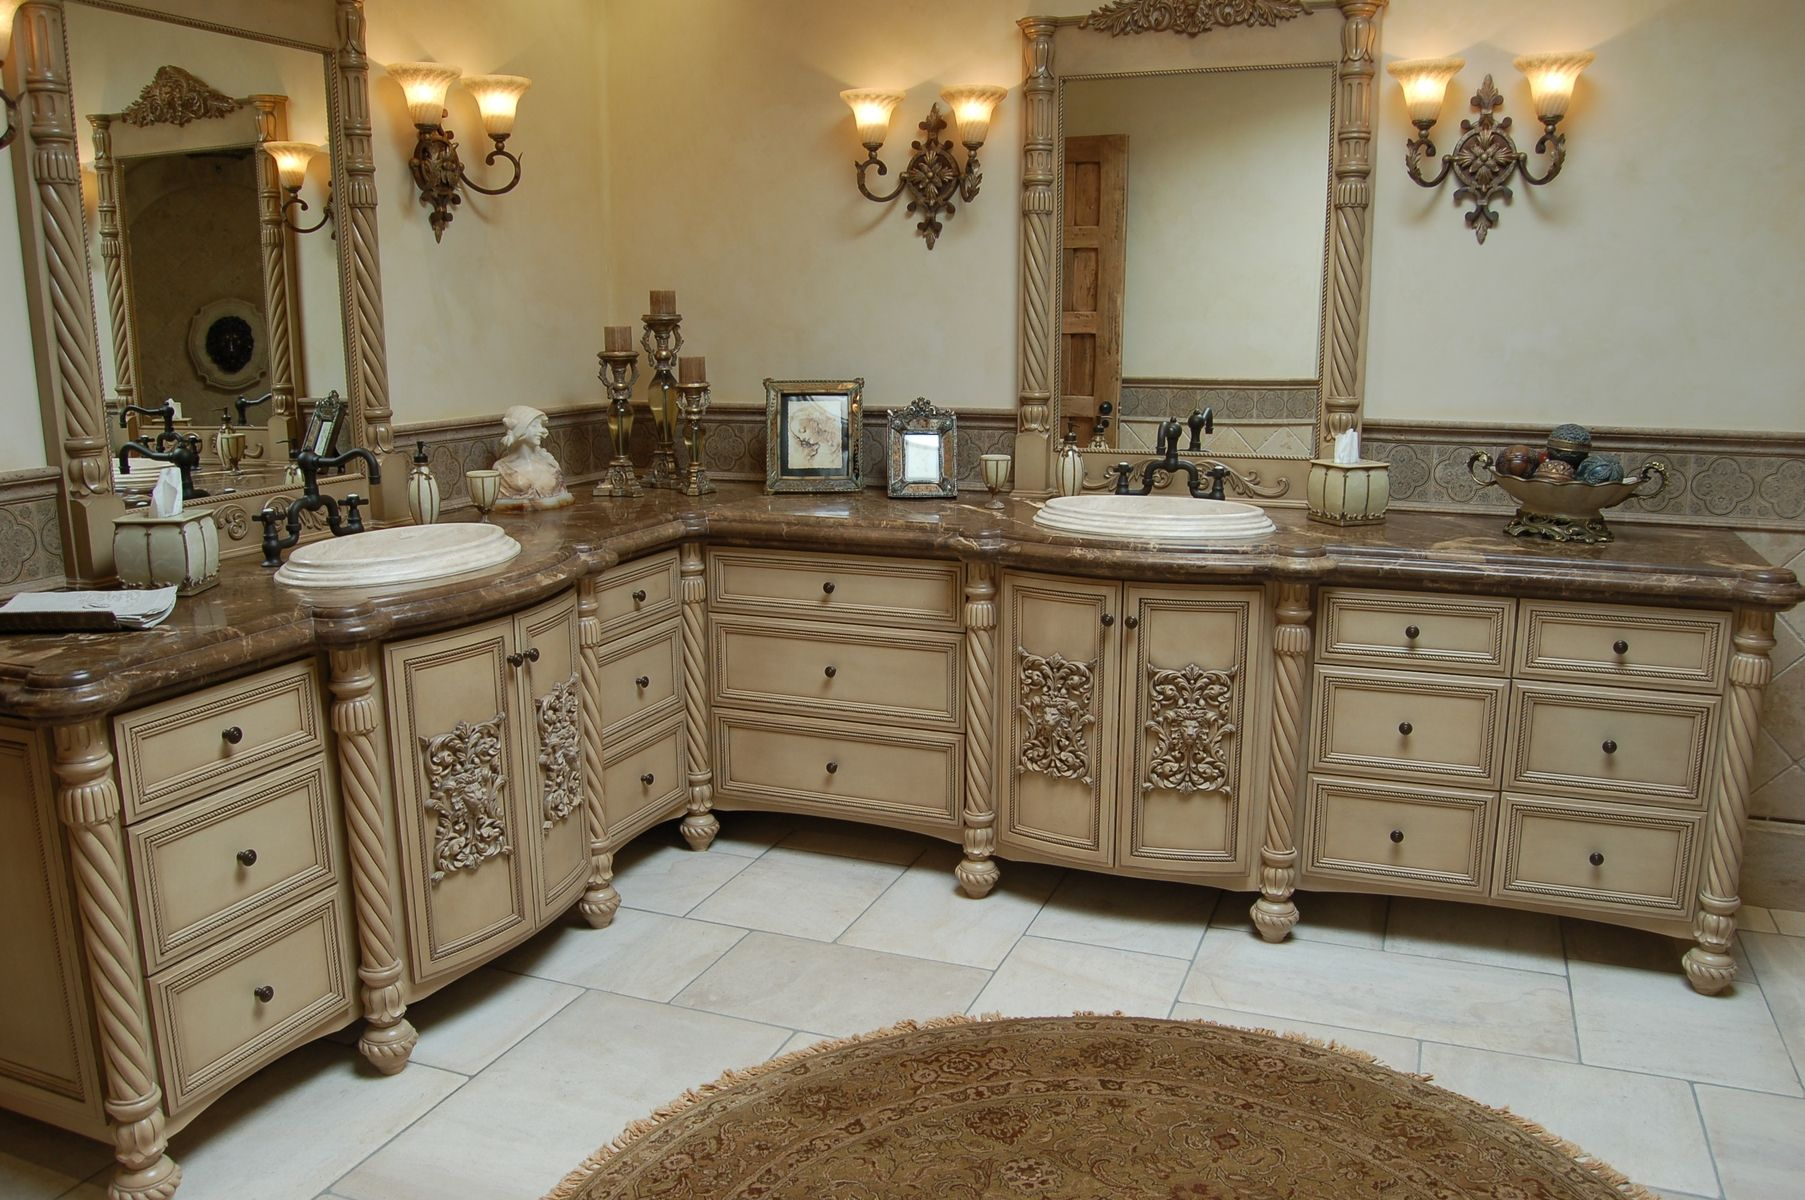 Handmade Custom Faux Finish Master Bathroom Cabinets by Westend Custom Cabinets  CustomMadecom